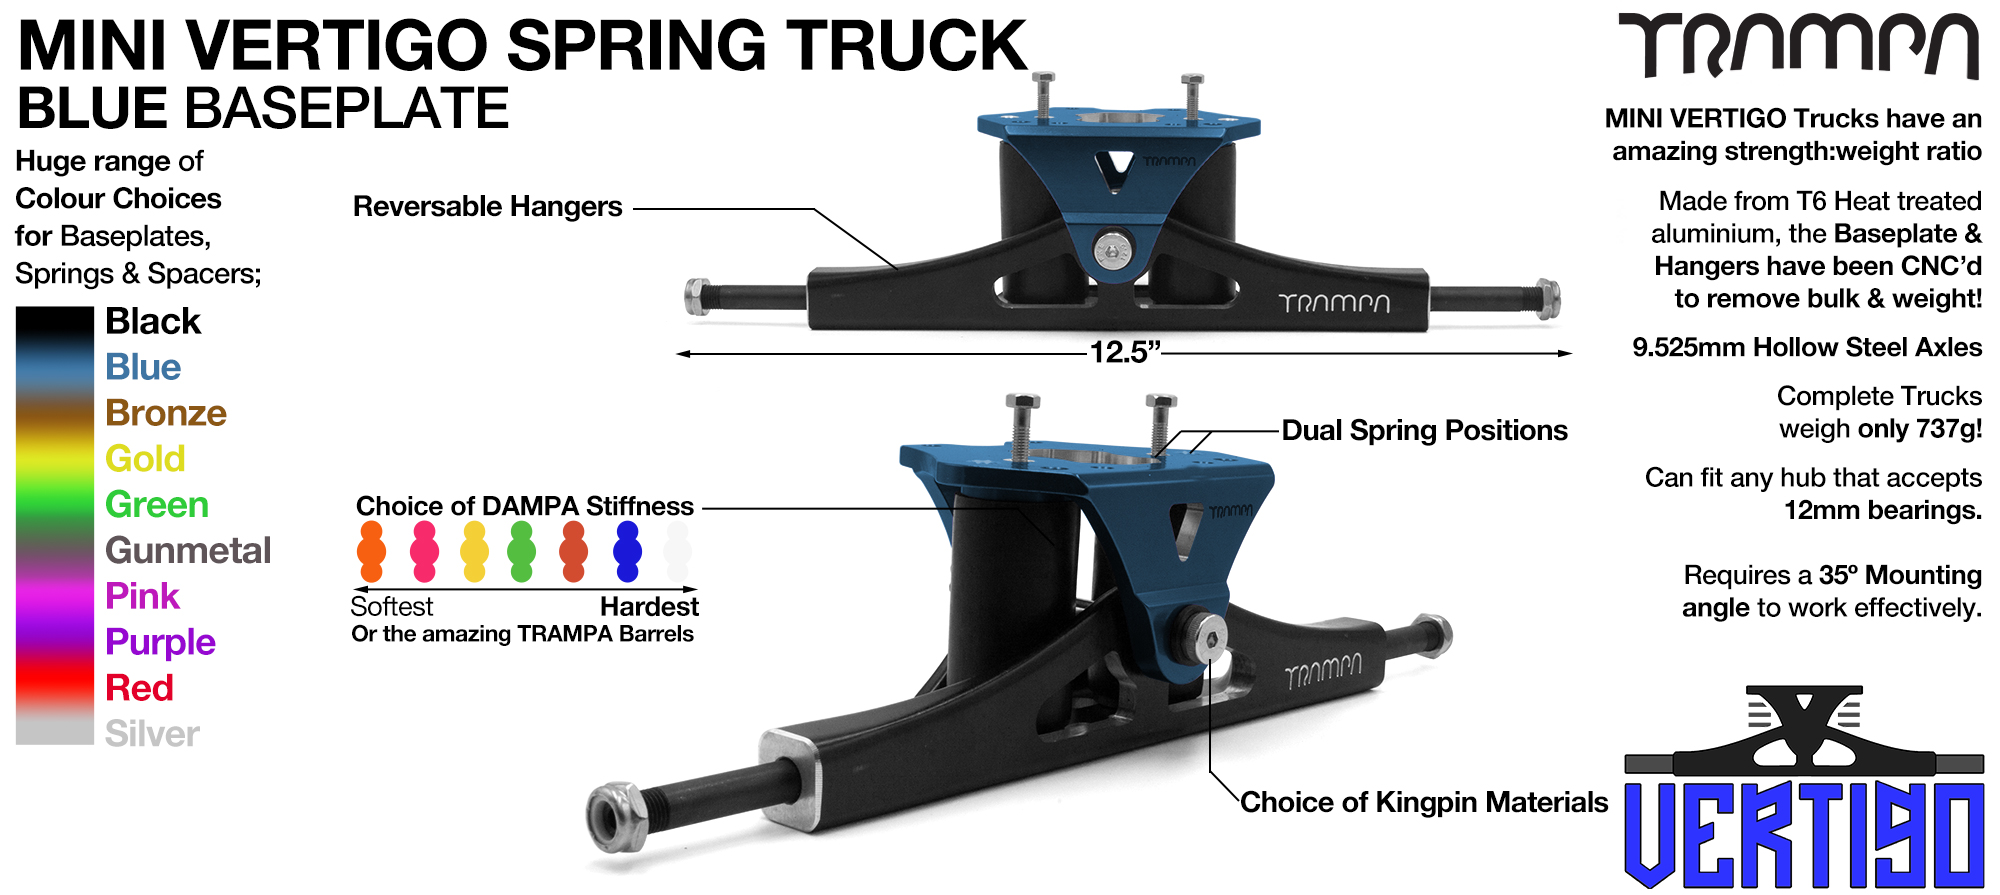 Mini VERTIGO TRAMPA TRUCKS - CNC FORGED Channel Hanger with 9.525mm HOLLOW Steel Axle CNC Baseplate Stainless Steel Kingpin - BLUE